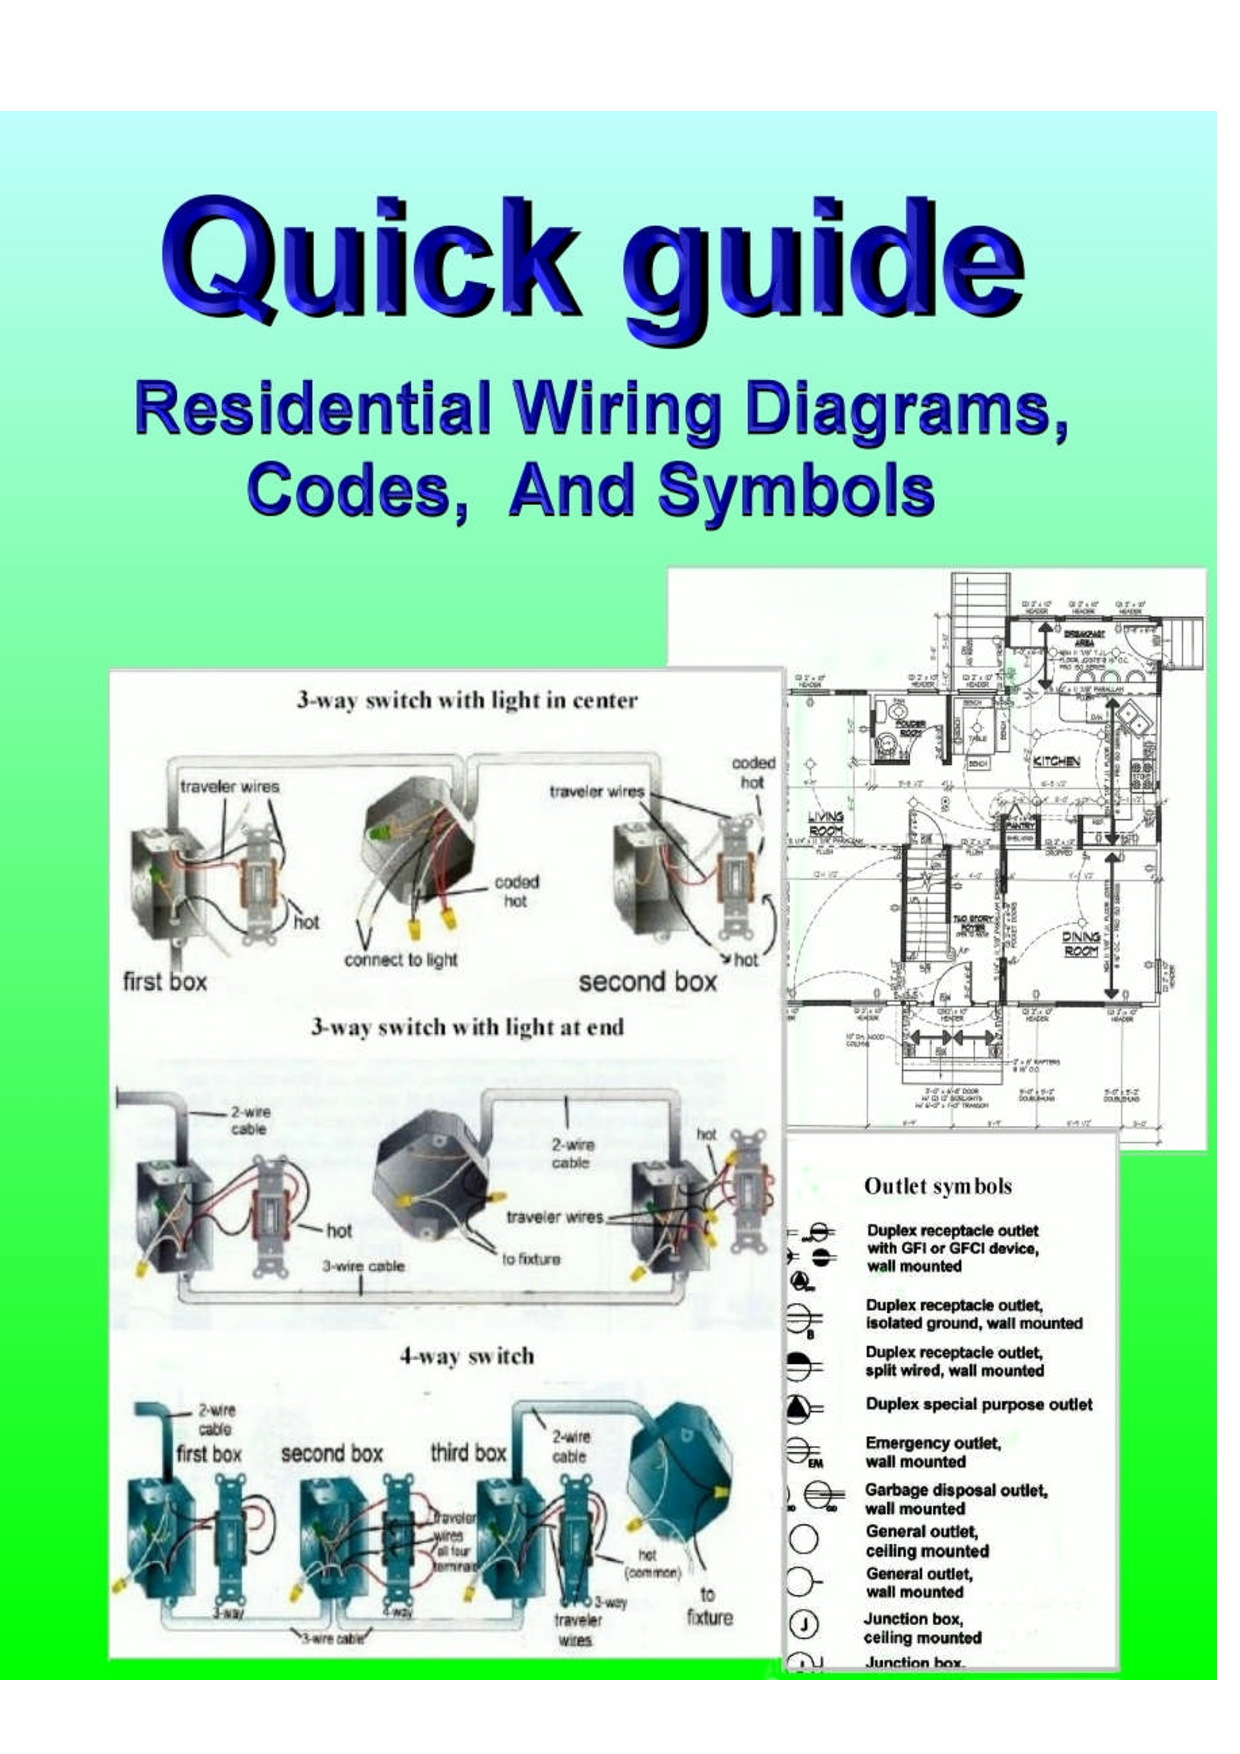 Electrical Wiring | Si systems, Electrical wiring and Diagram